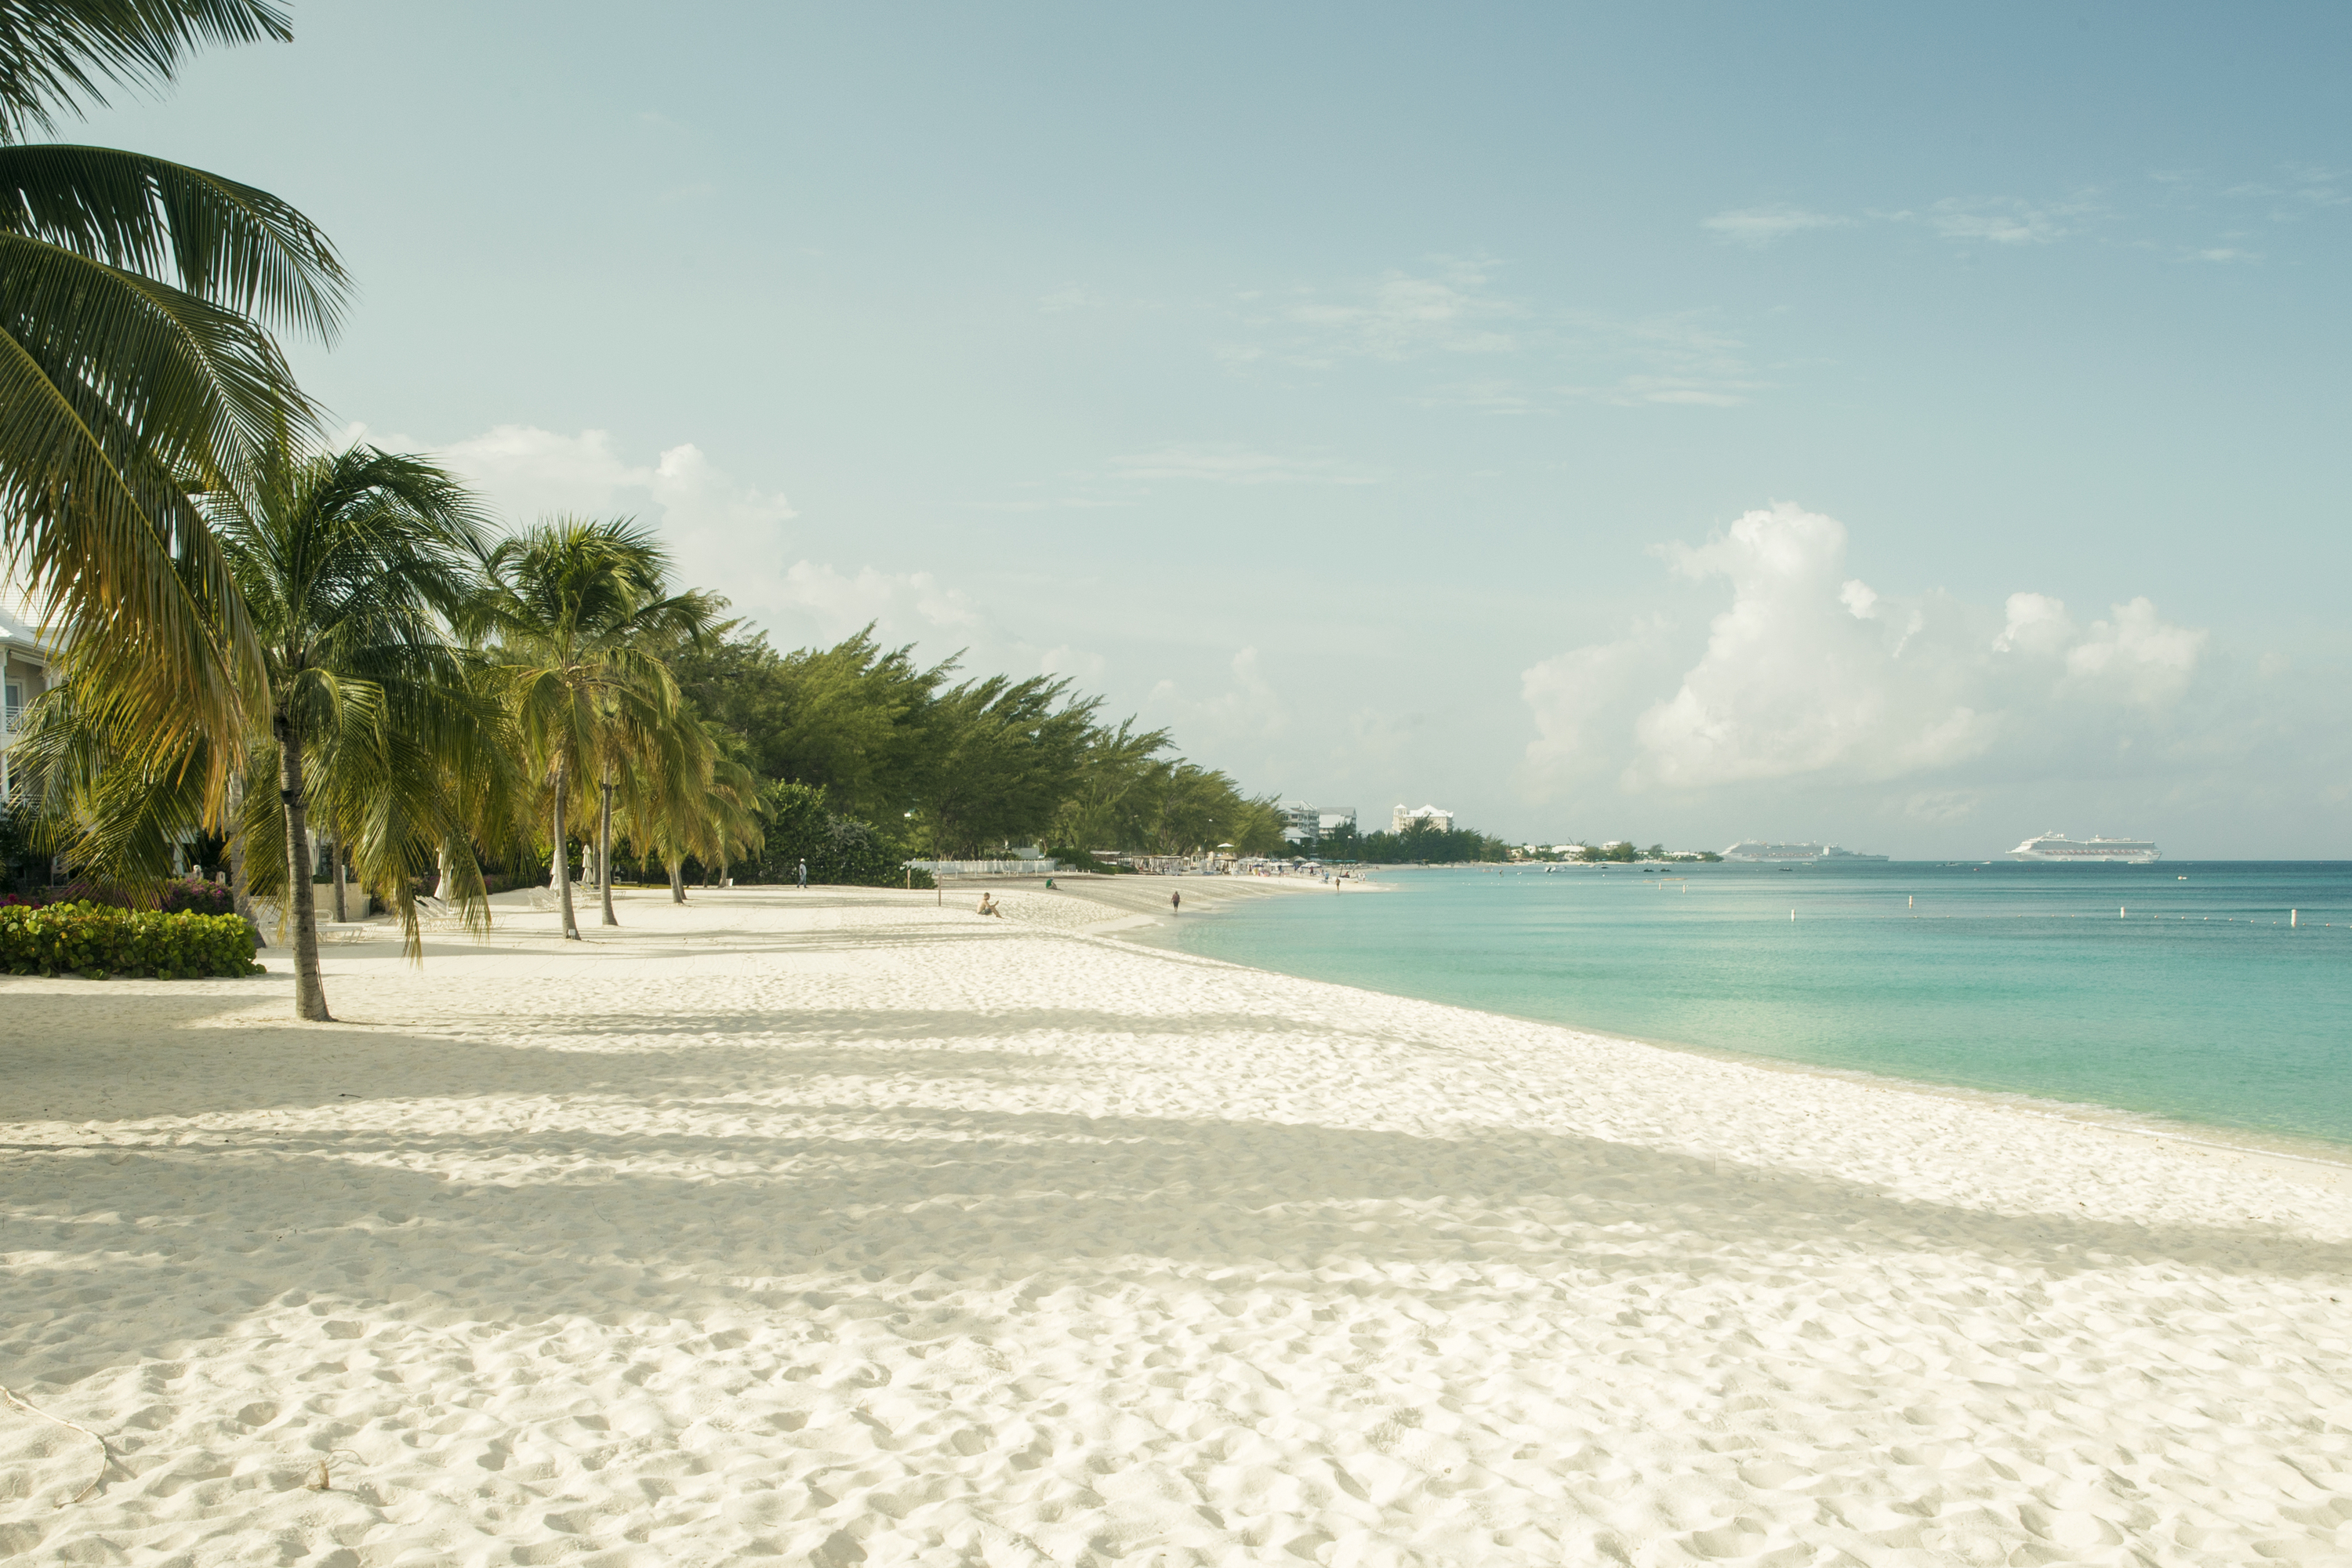 If you're planning your next vacation, the Cayman Islands should be at the top of your list! Here's everything you need to know about the Cayman Islands!